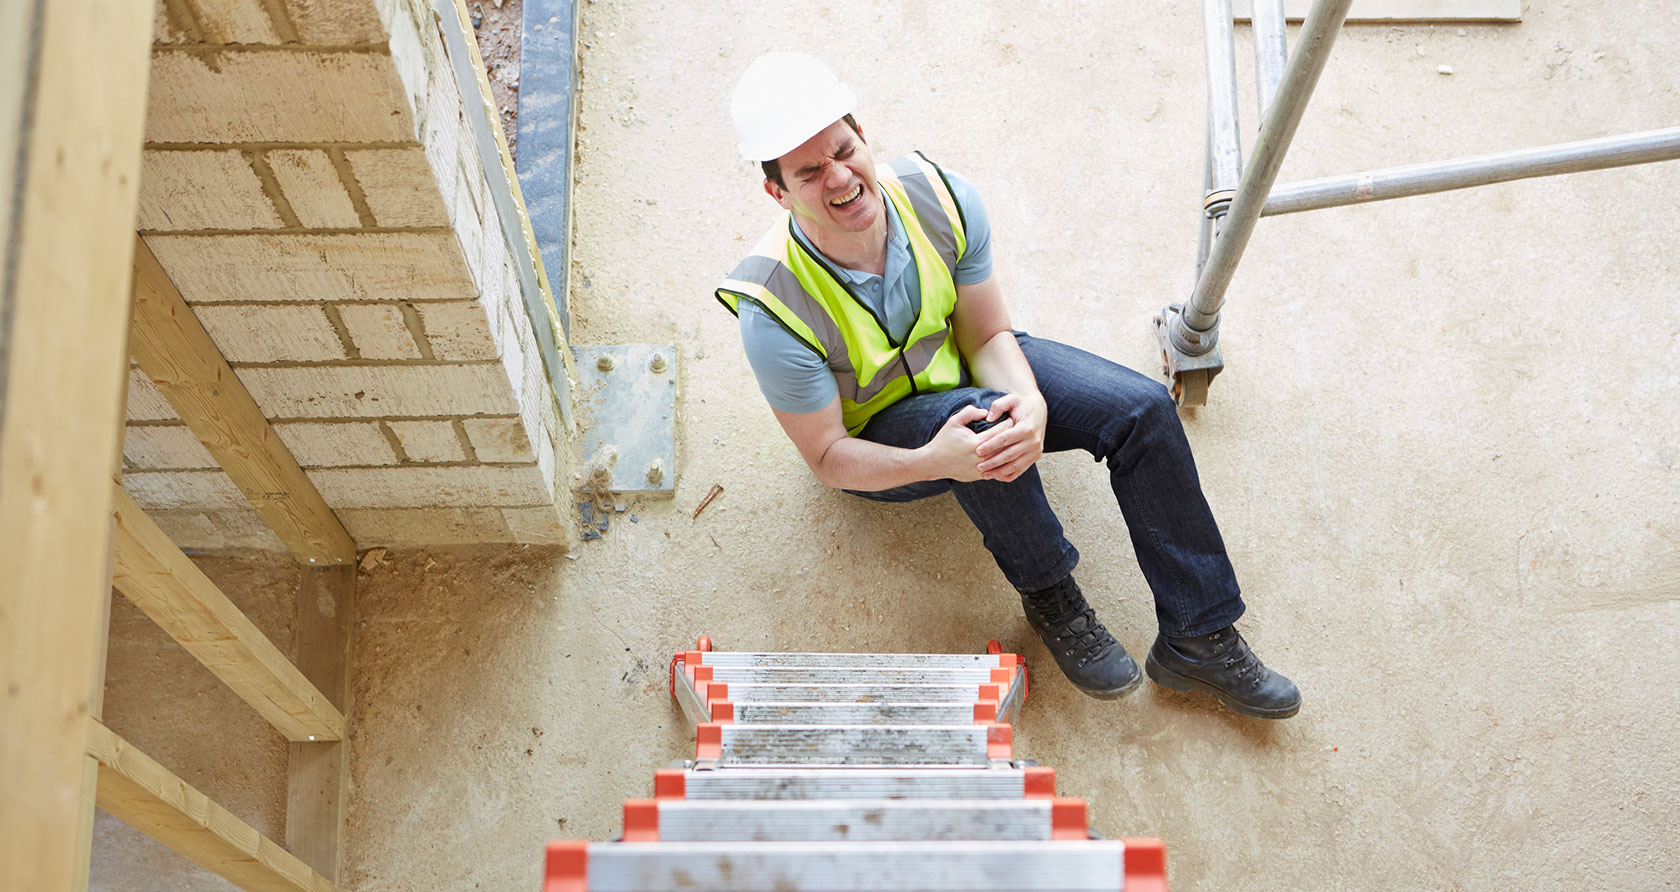 Injured on a Construction Site? Follow these Steps